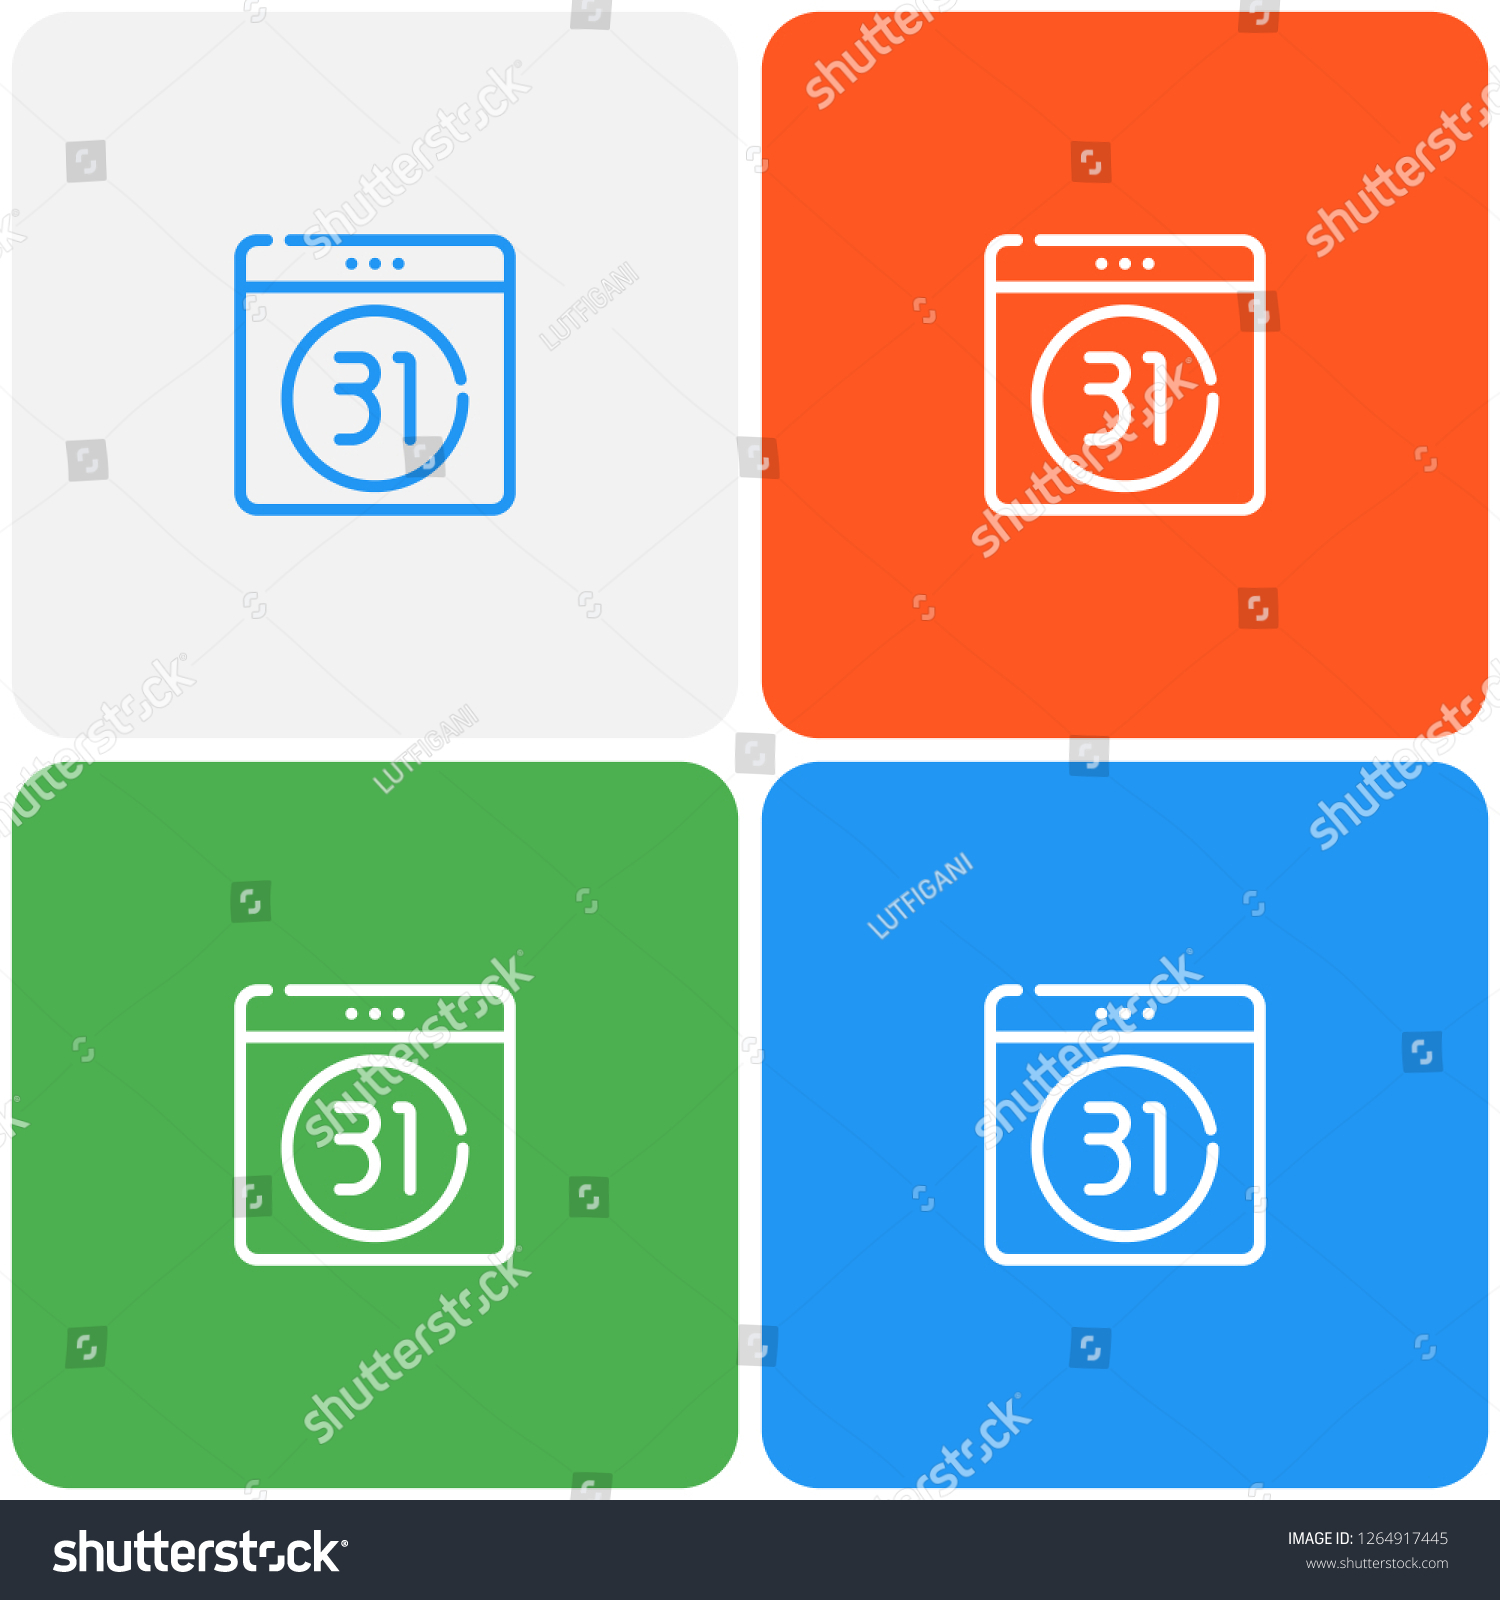 Calendar Outline Flat Icon Material Design Stock Vector with Material Design Calendar Icon